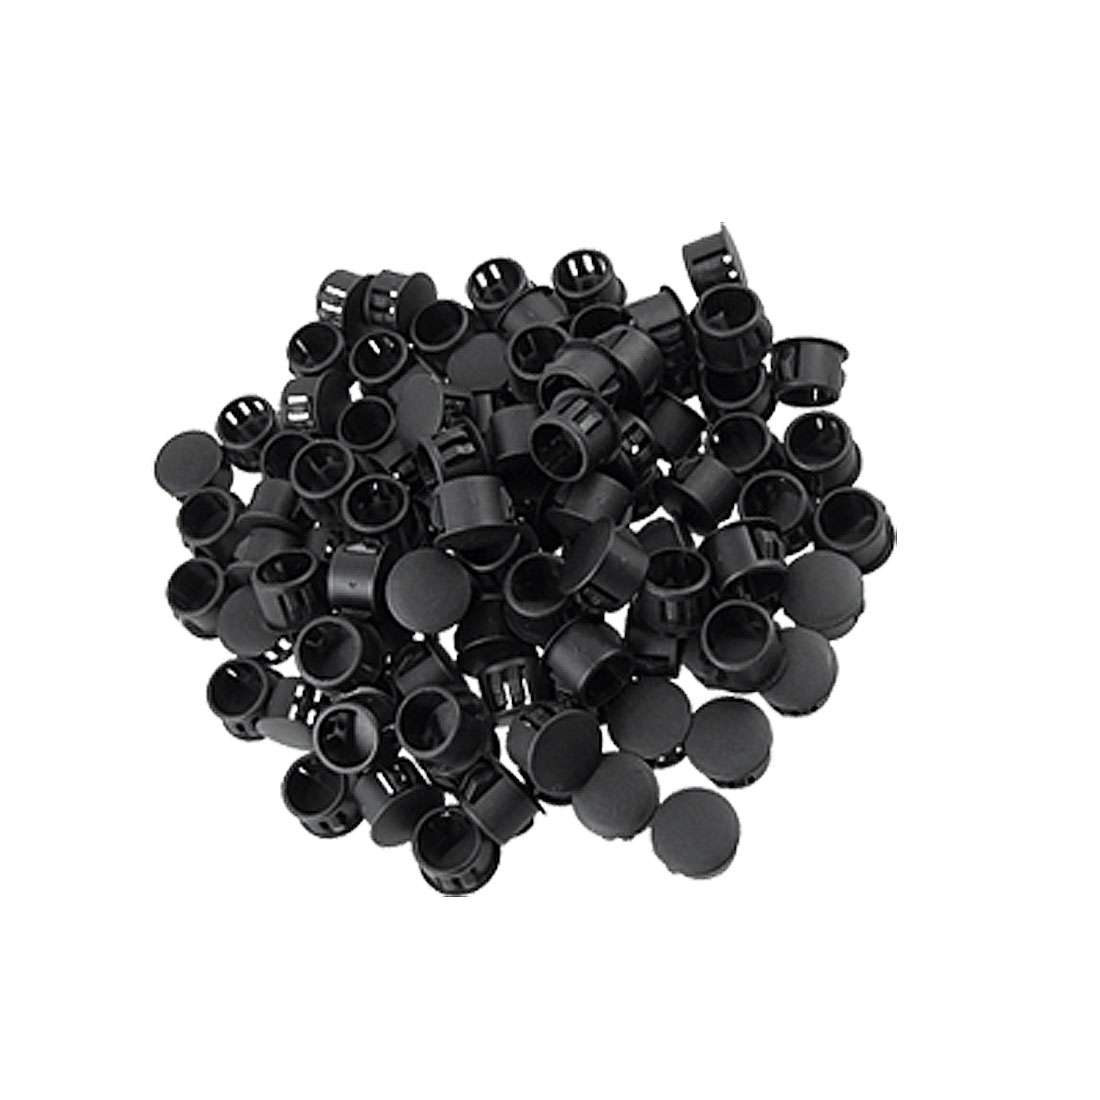 "Plastic Locking Hole Plugs Black 100 Pcs w 9/16"" Head"